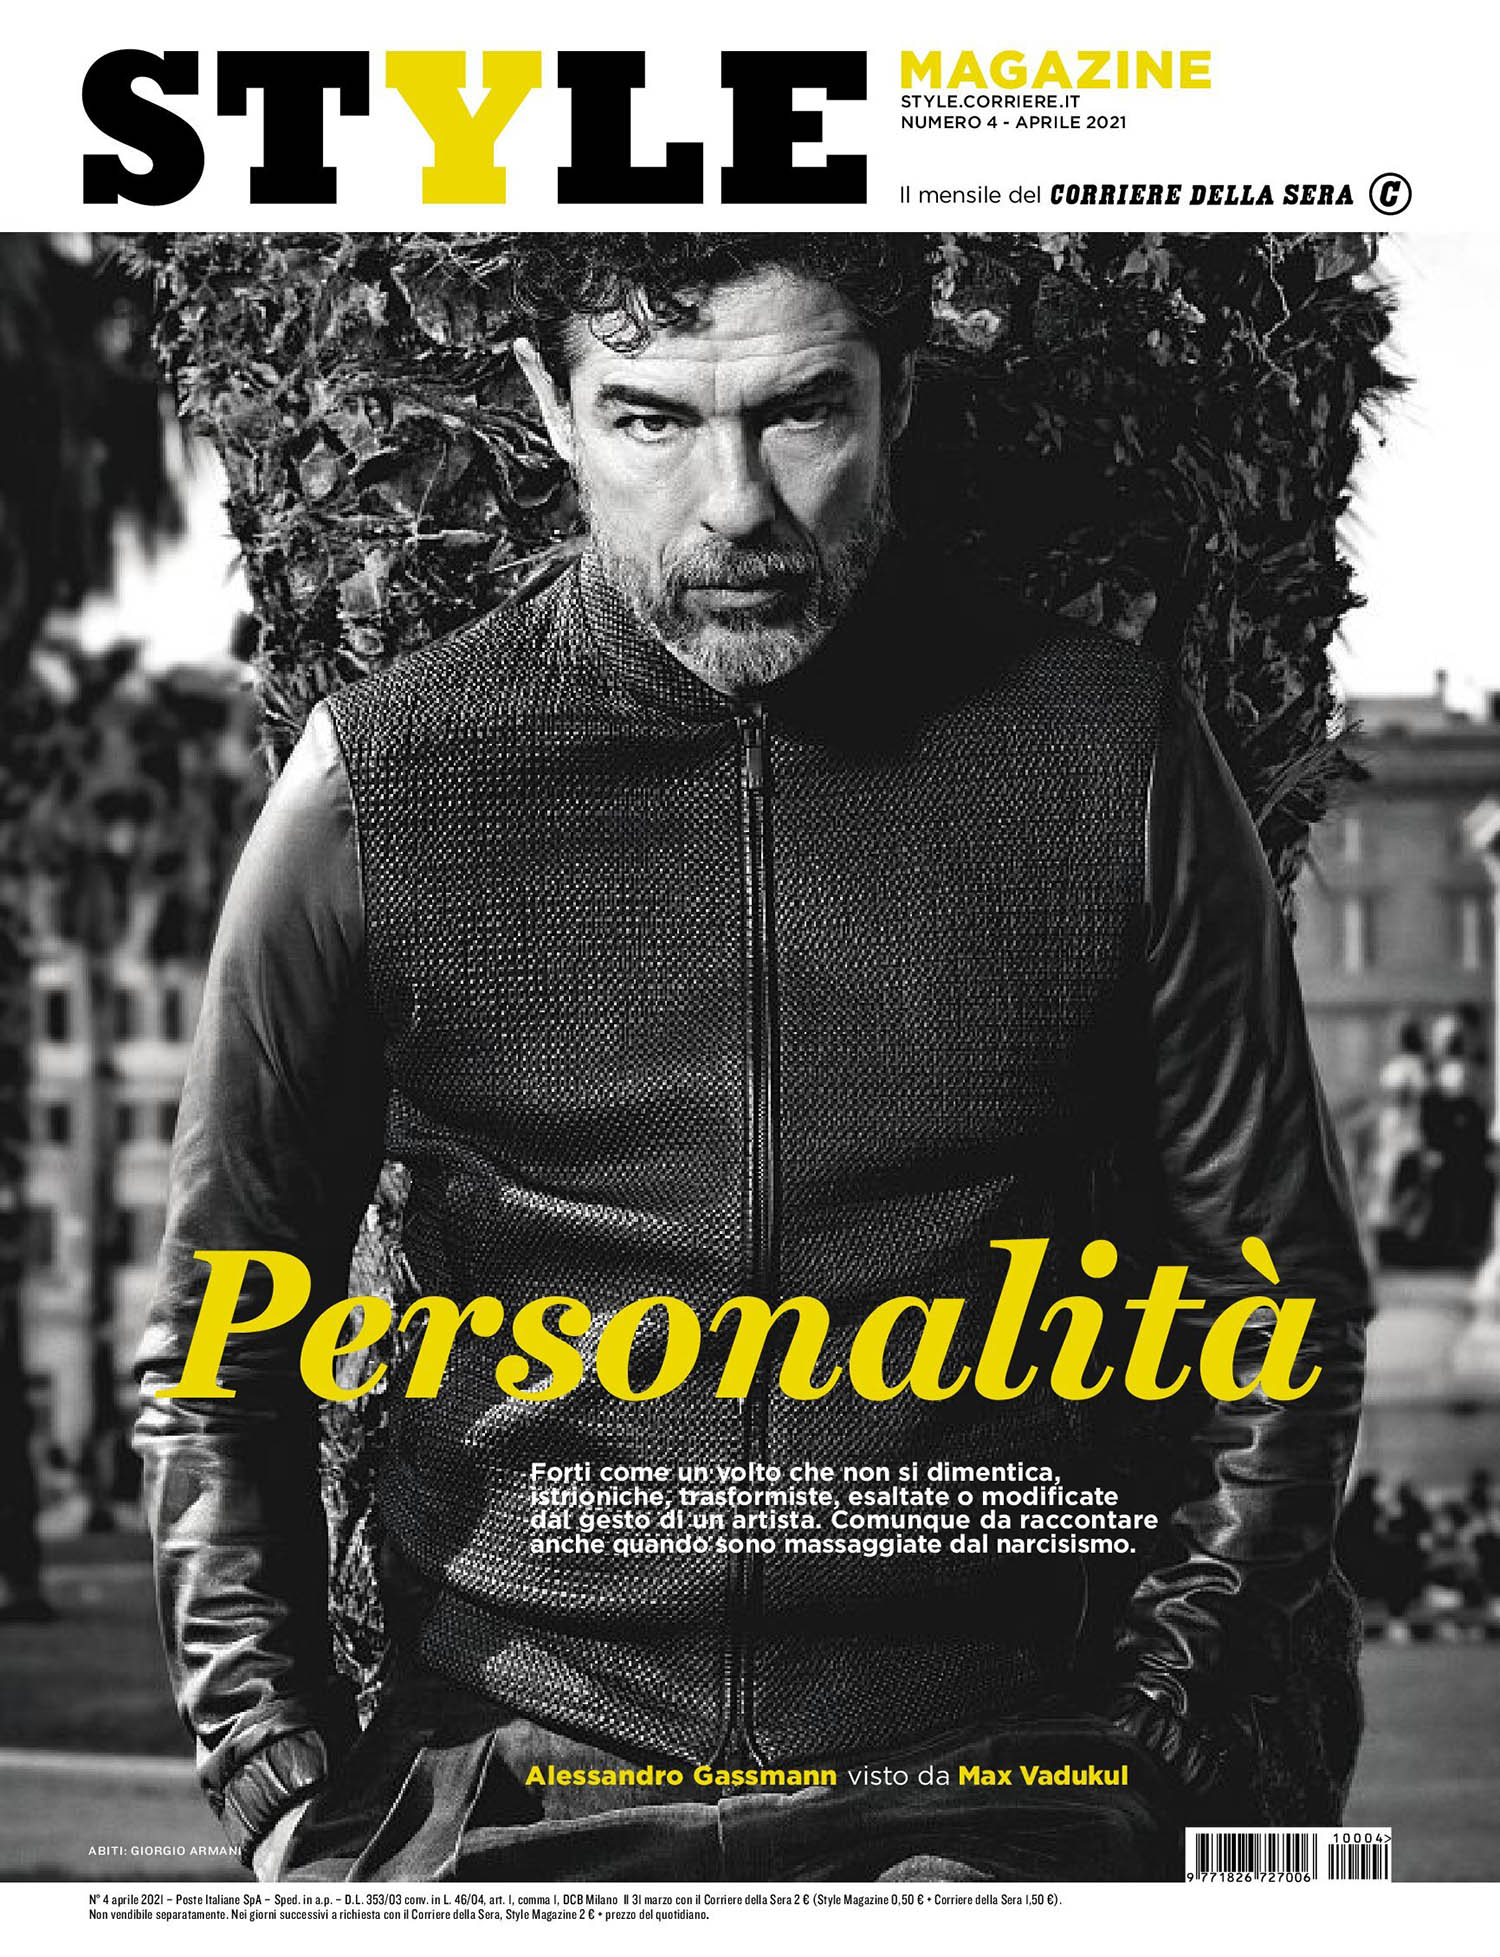 Alessandro Gassmann covers Corriere della Sera Style April 2021 by Max Vadukul